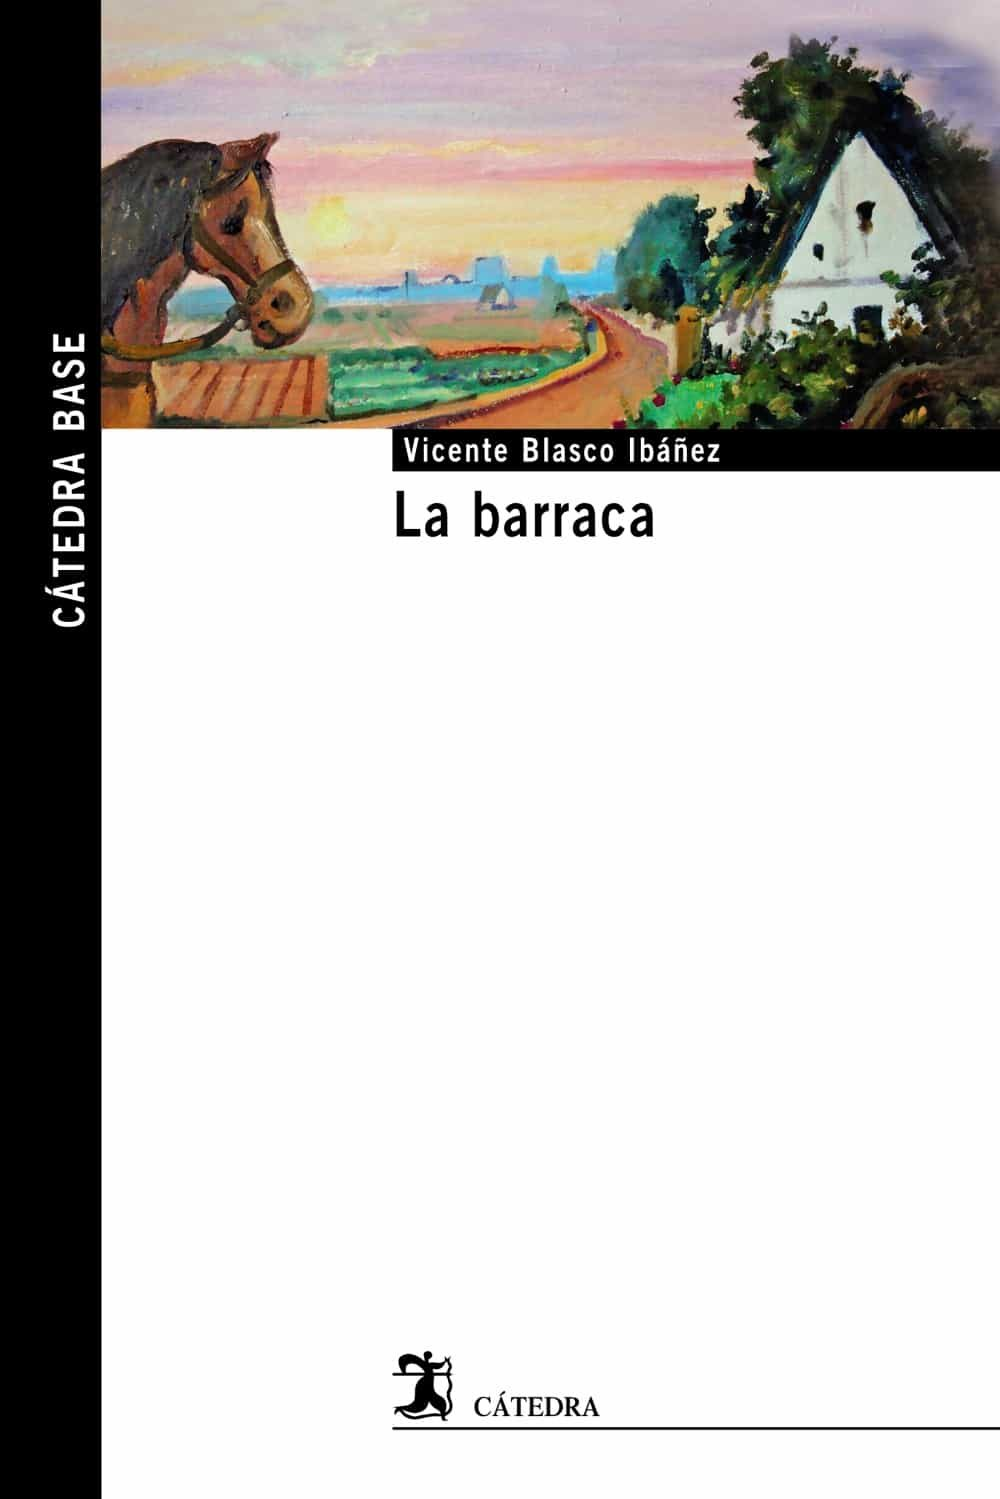 La Barraca - Blasco Ibañez Vicente